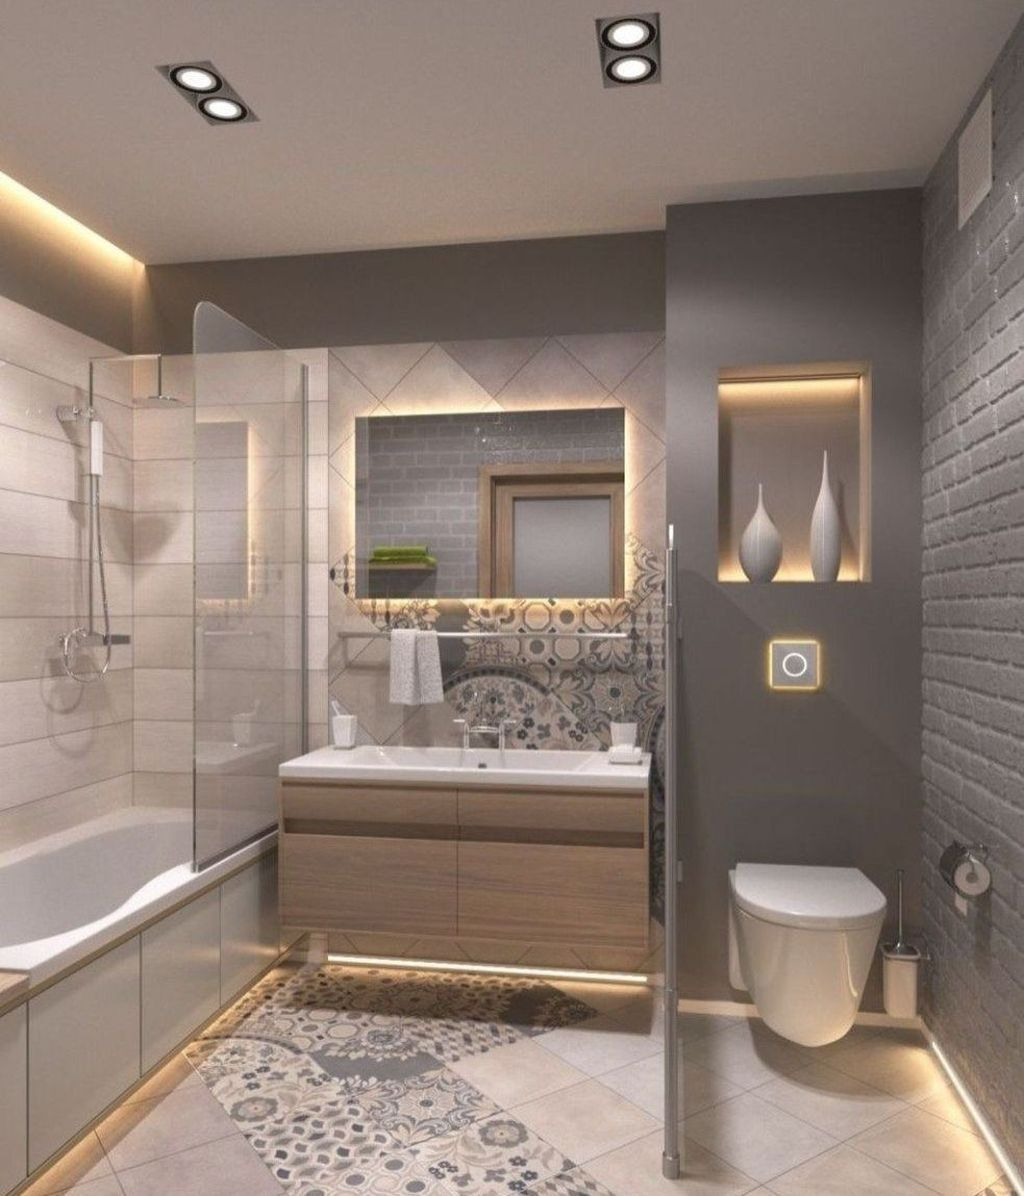 Cool And Awesome Small Bathroom Design Ideas Bathroom Renovation Designs Small Apartment Bathroom Bathroom Remodel Master